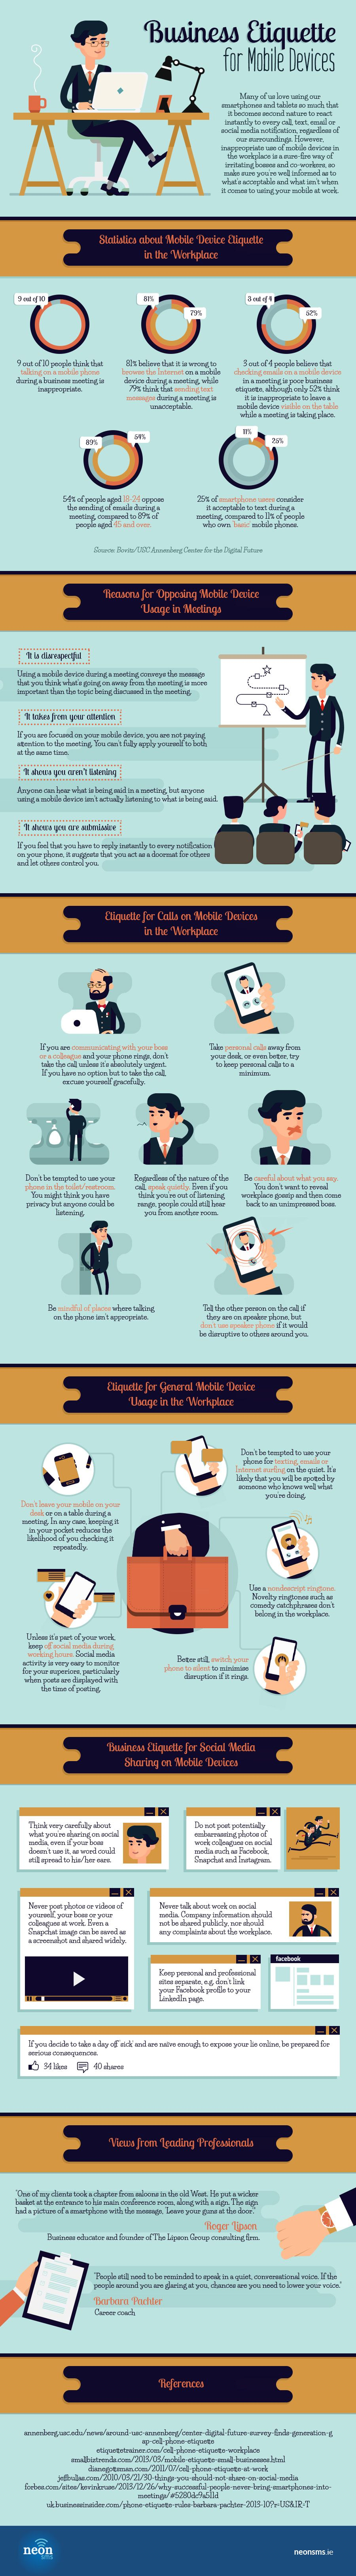 Business Etiquette for Mobile Devices #Infographic